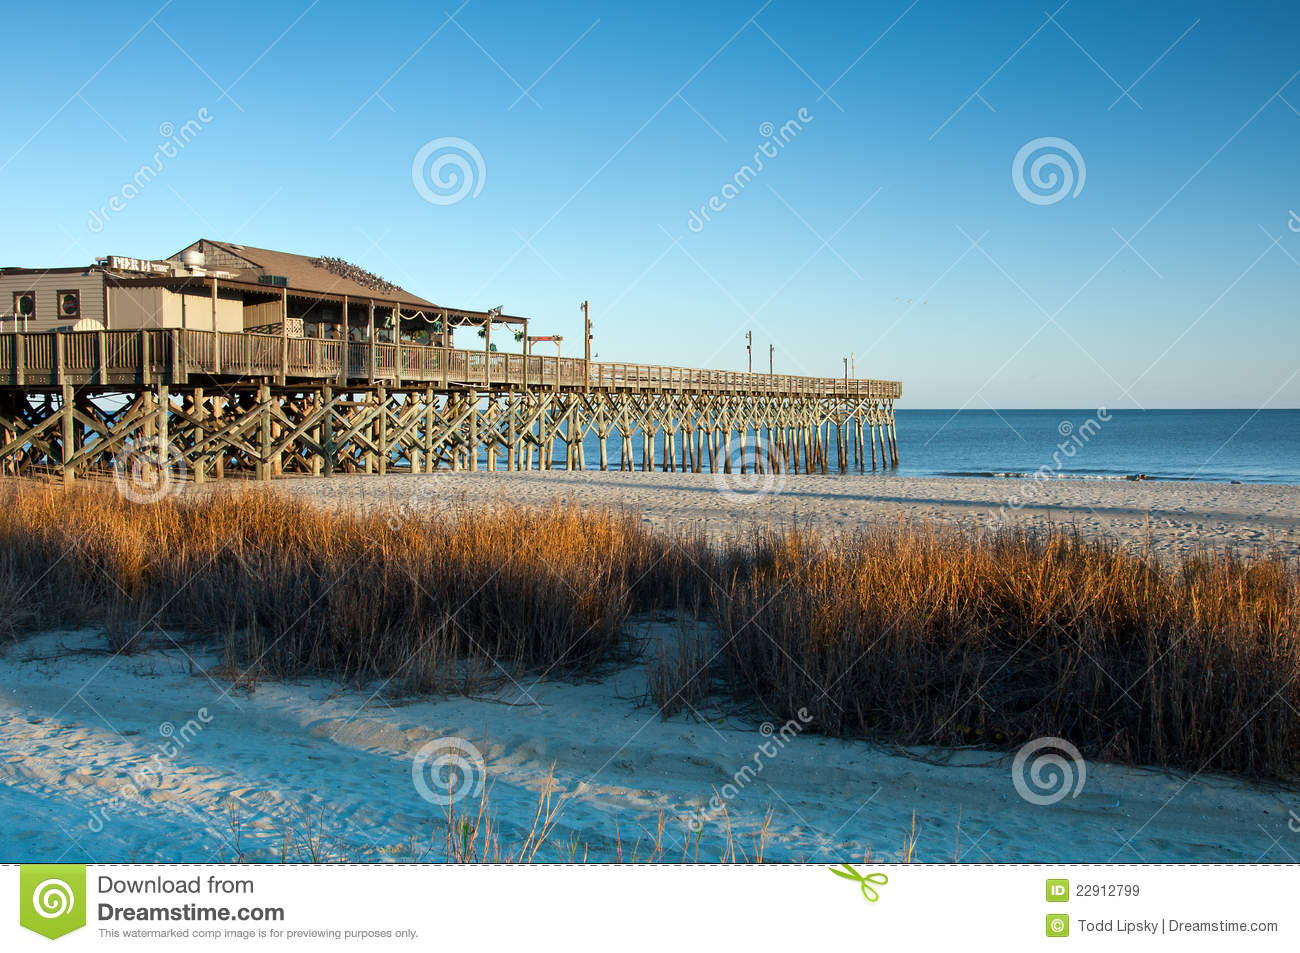 Myrtle beach pier royalty free stock images image 22912799 for Fishing piers in myrtle beach